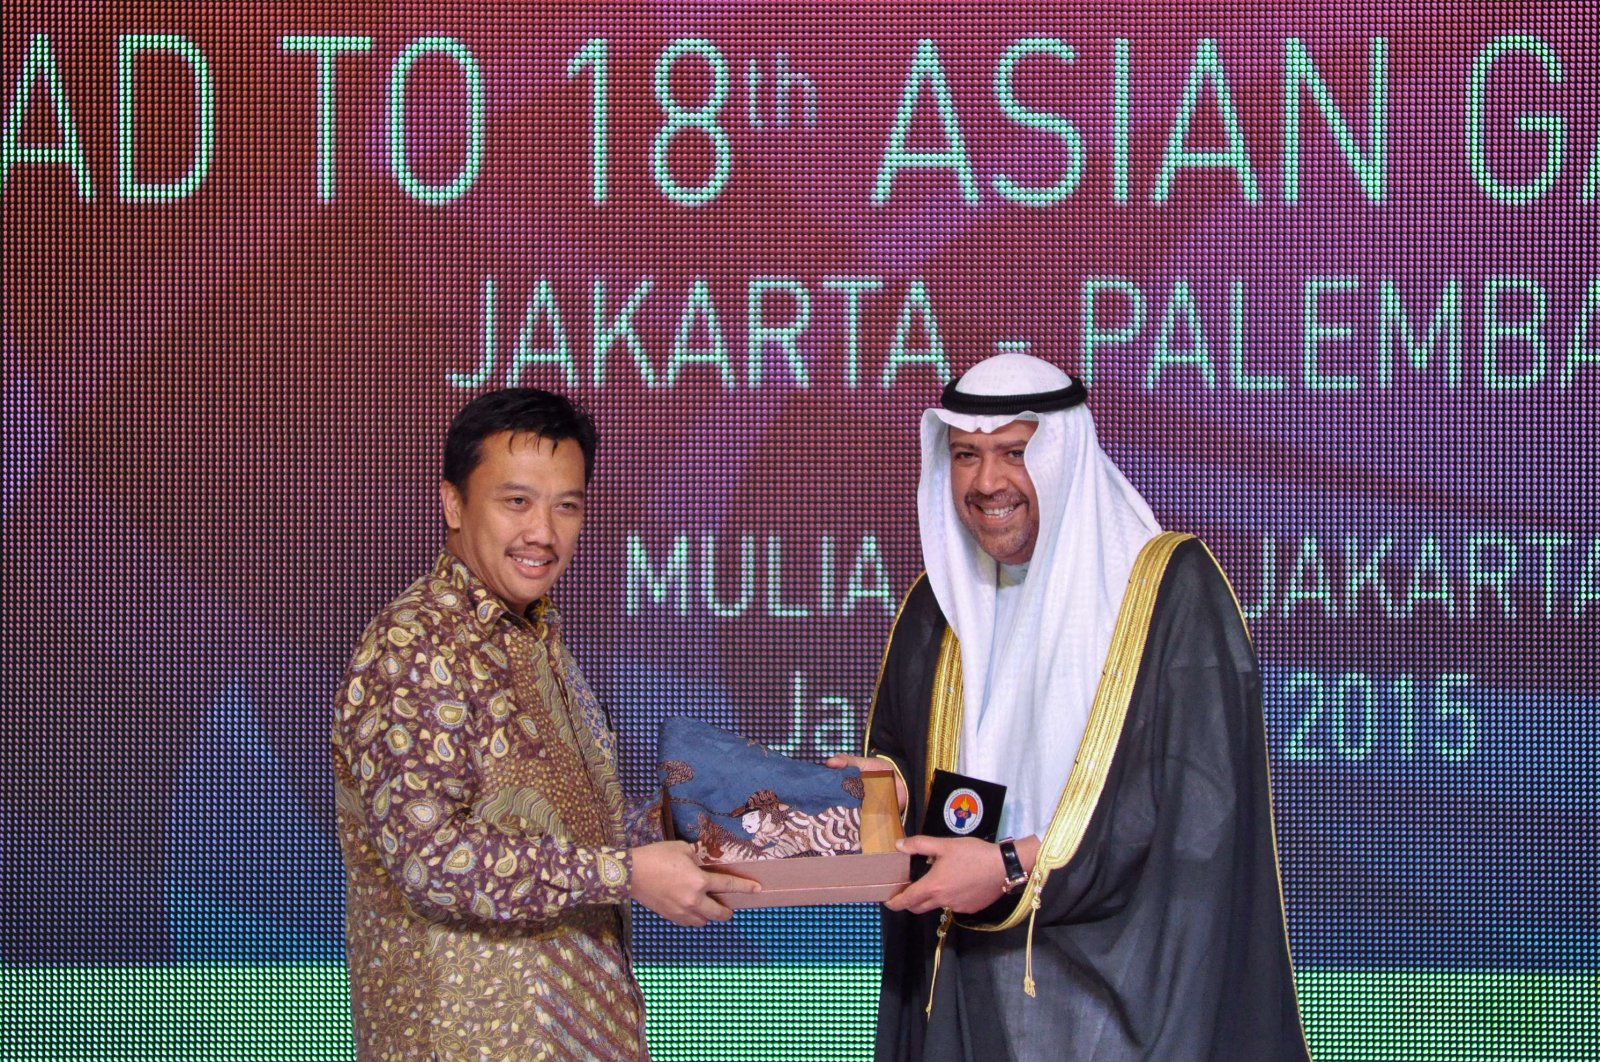 Indonesian Minister of Youth and Sport Imam Nahrawi (L) gives a souvenir to Sheikh Ahmad Al-Fahad Al-Sabah (R) at a ceremony in Jakarta on Jan. 7, 2015. (AFP Photo)